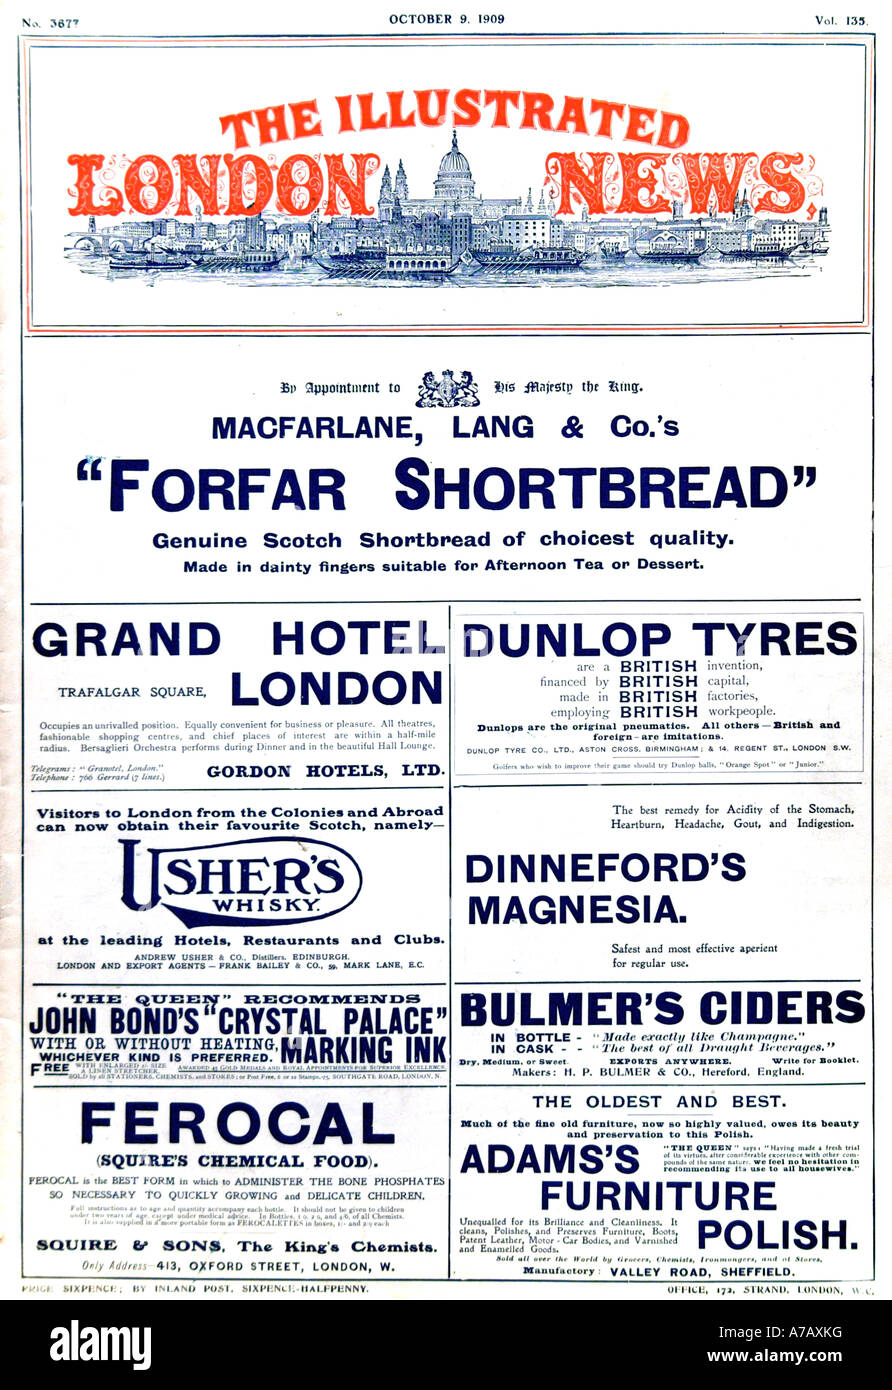 The Illustrated London News October 9th 1909 for Editorial Purposes Only - Stock Image